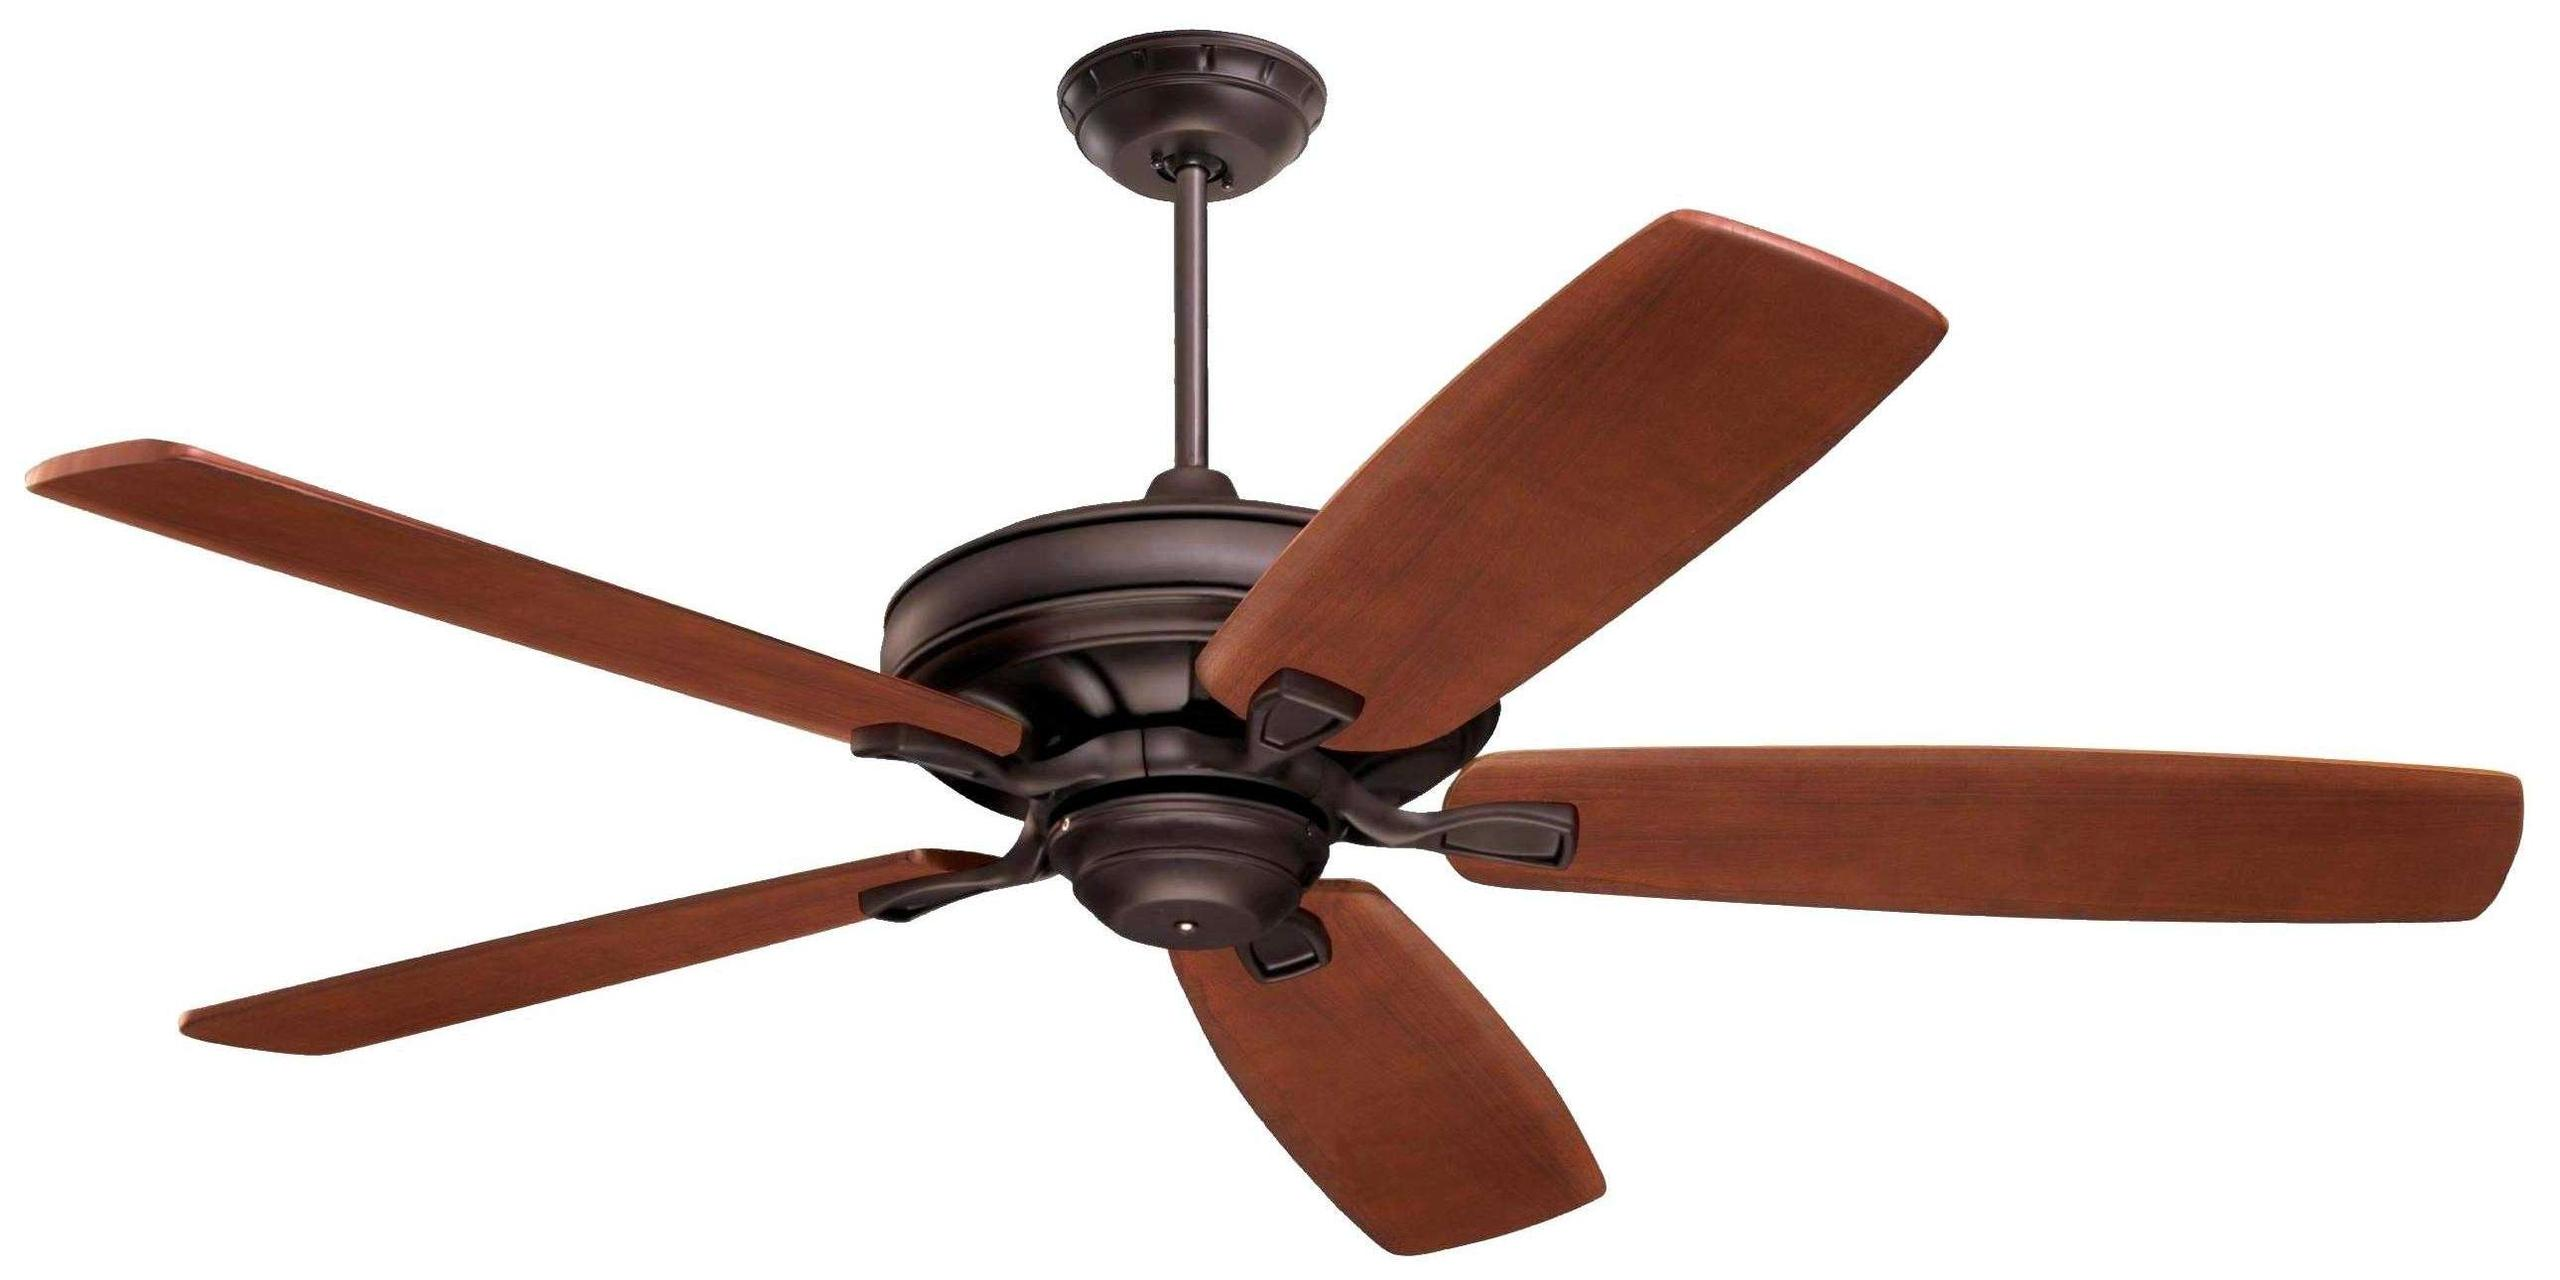 Emerson Carrera Grande Eco 60 (DC Motor) Ceiling Fan Model CF788VNB-B78WA in Venetian Bronze